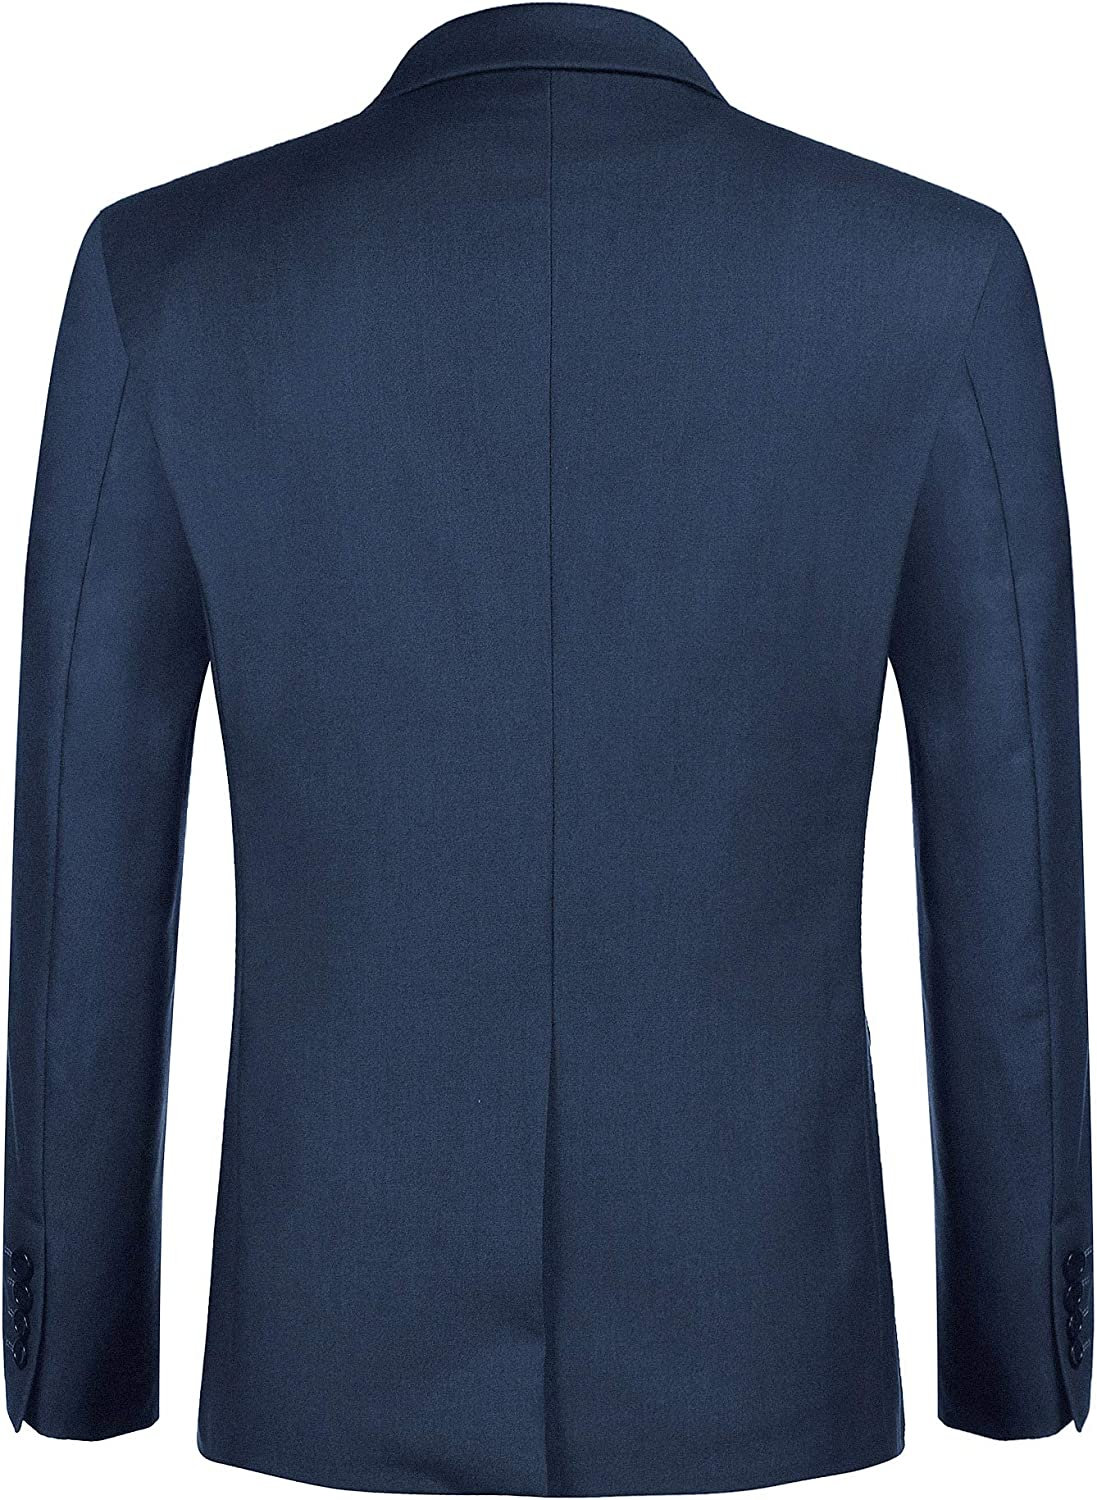 Mens Casual Suit Blazer Jackets Lightweight Slim Fit One Button Sports Coats